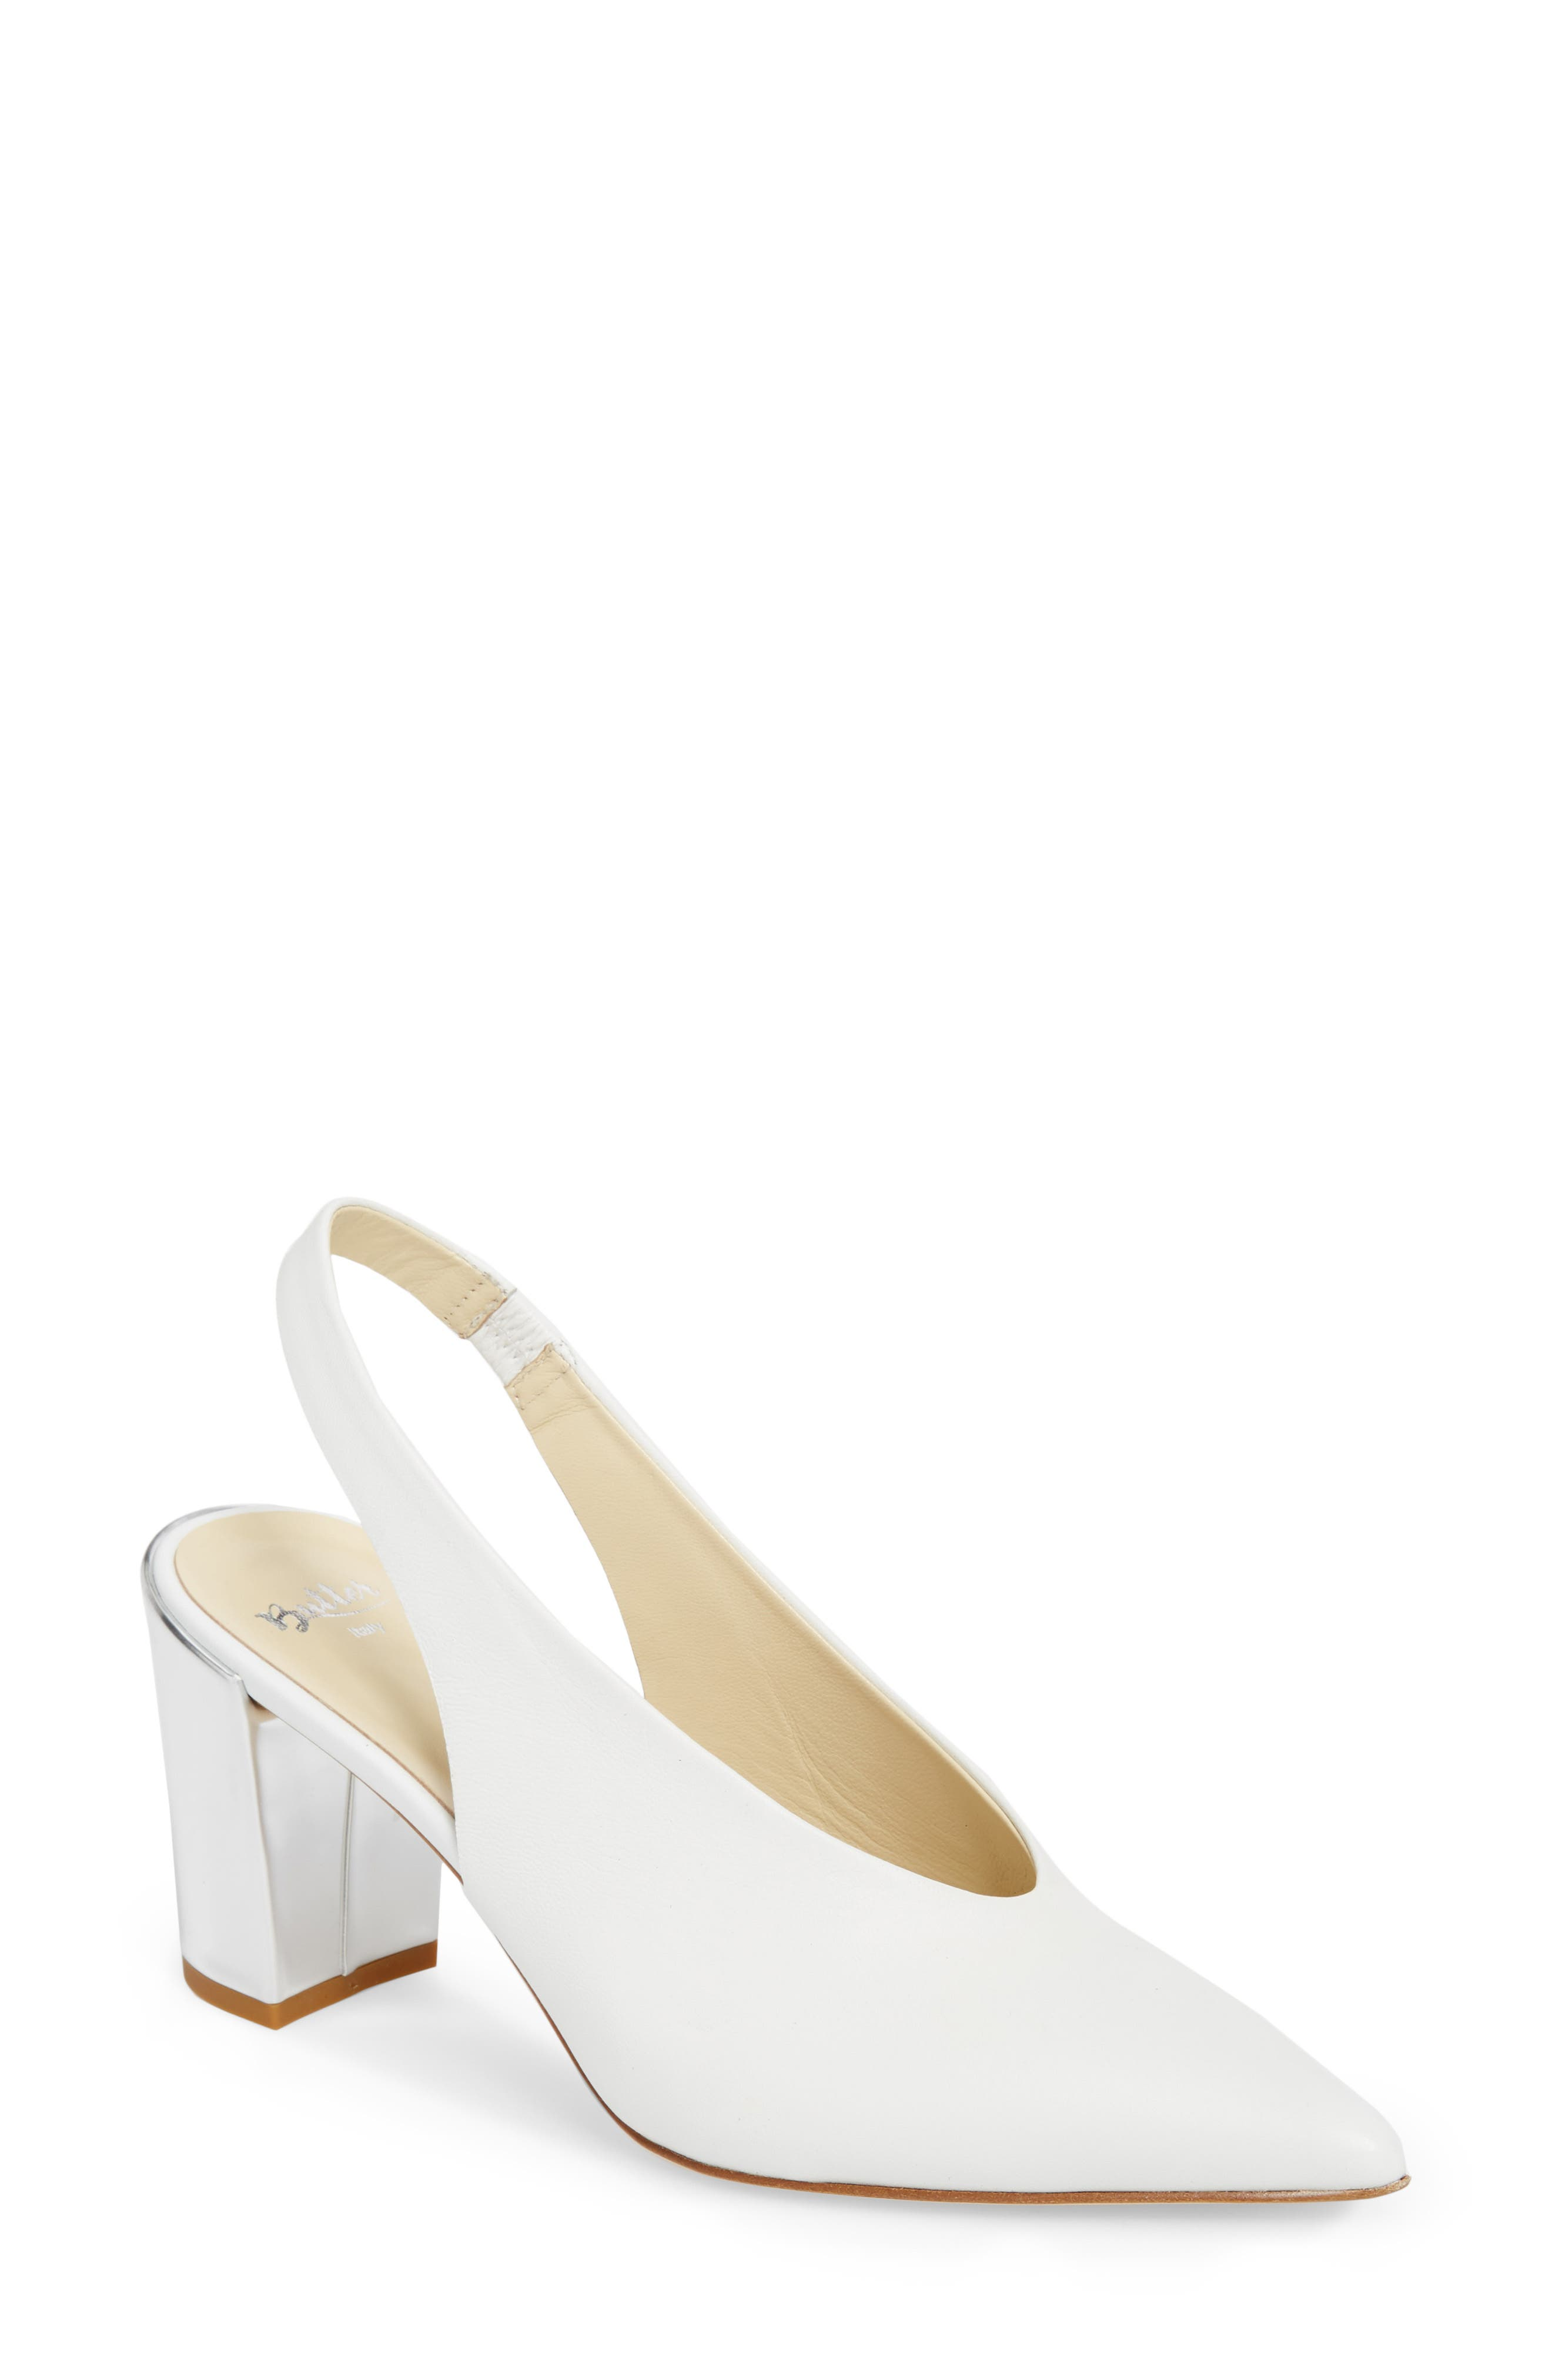 Butter Kendell Slingback Pump,                             Main thumbnail 1, color,                             100